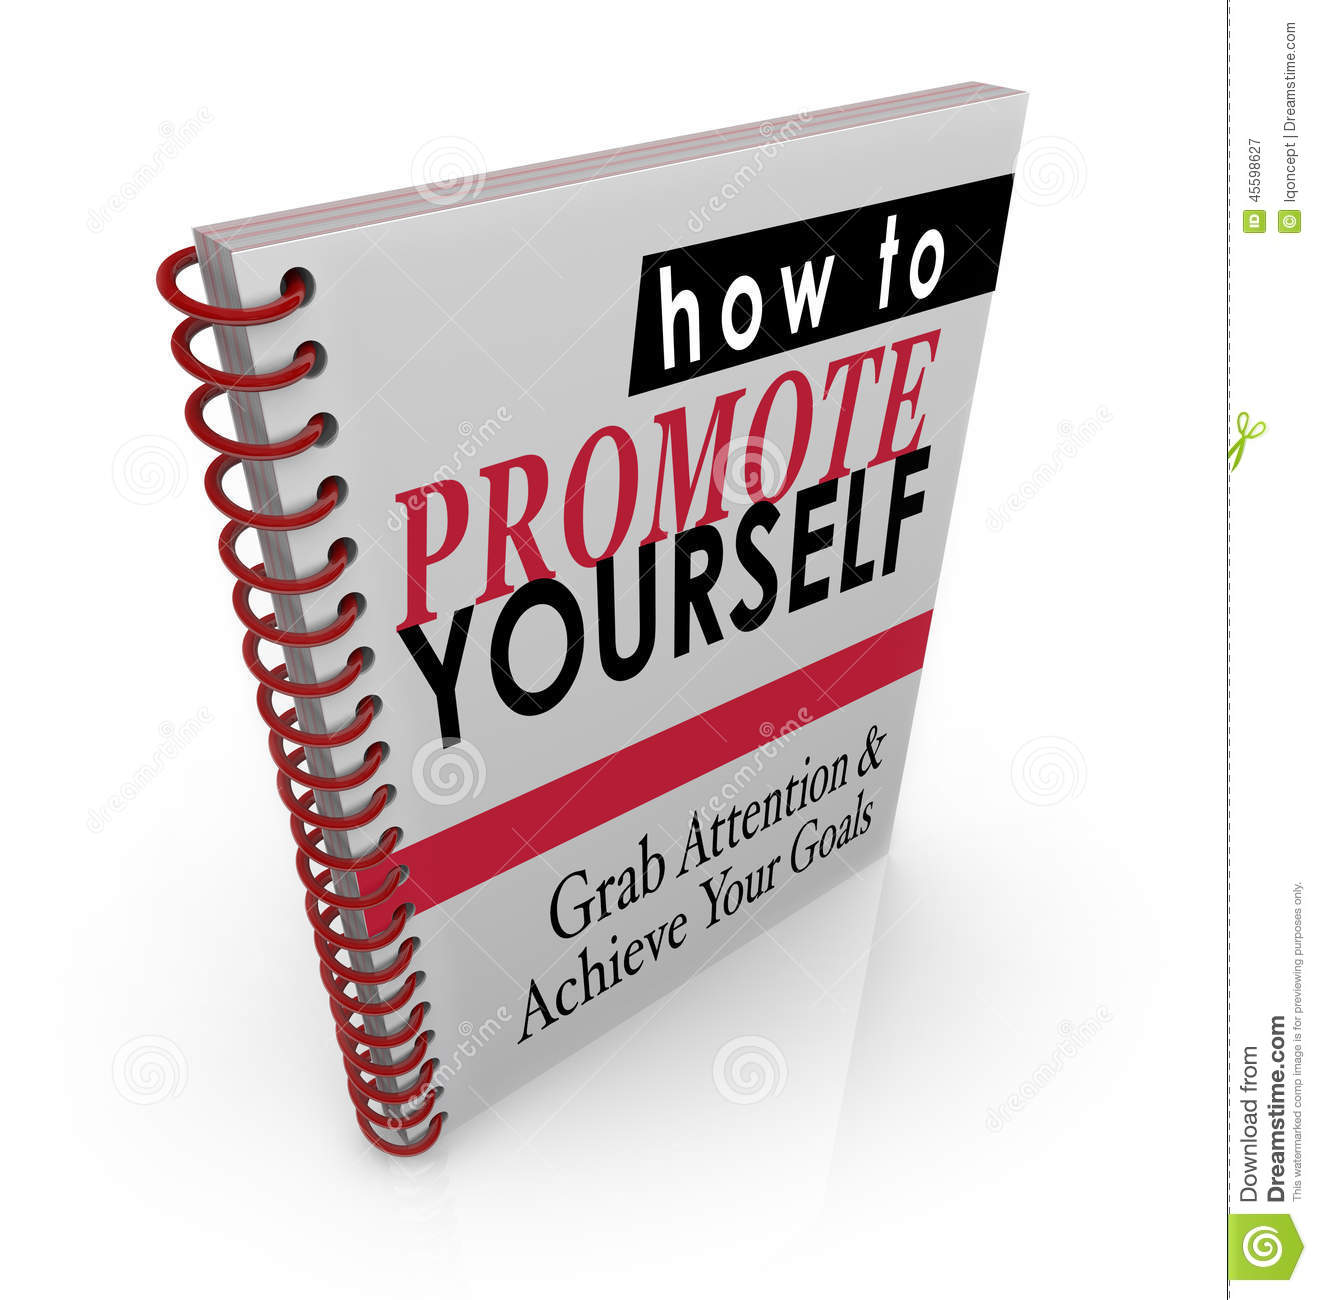 how to promote yourself book manual guide instructions stock illustration